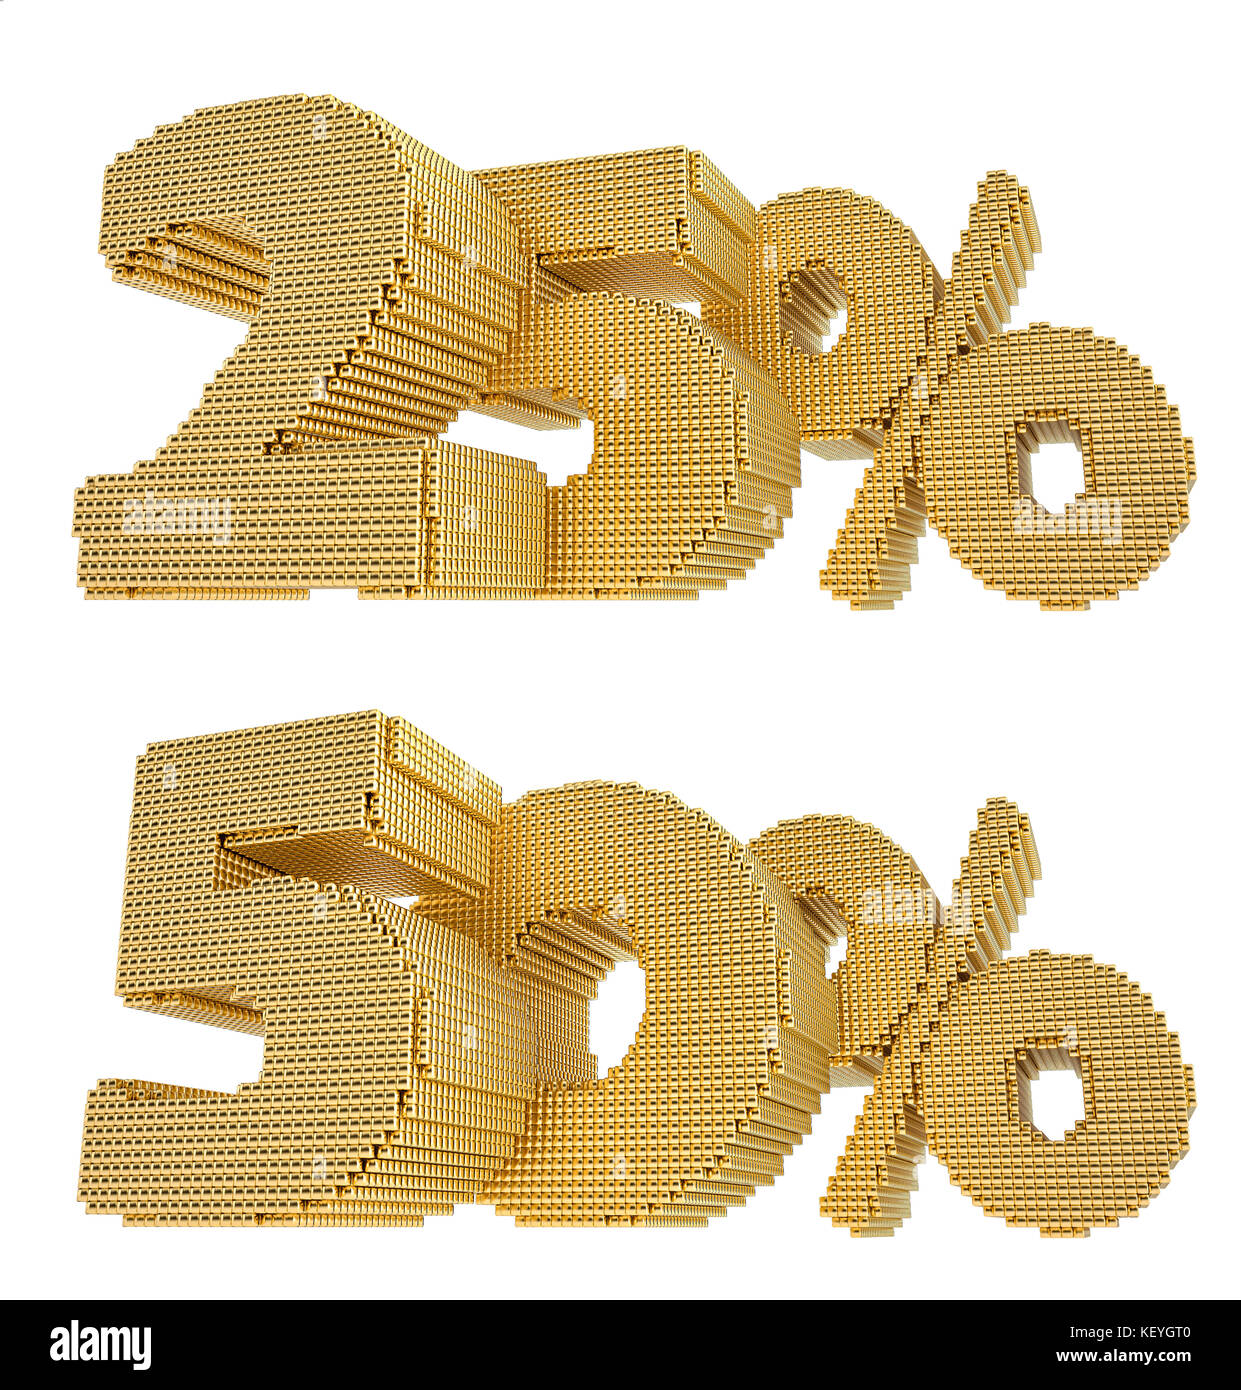 25% and 50%% discount - build from golden cubes - isolated on white background - 3D Rendering Stock Photo